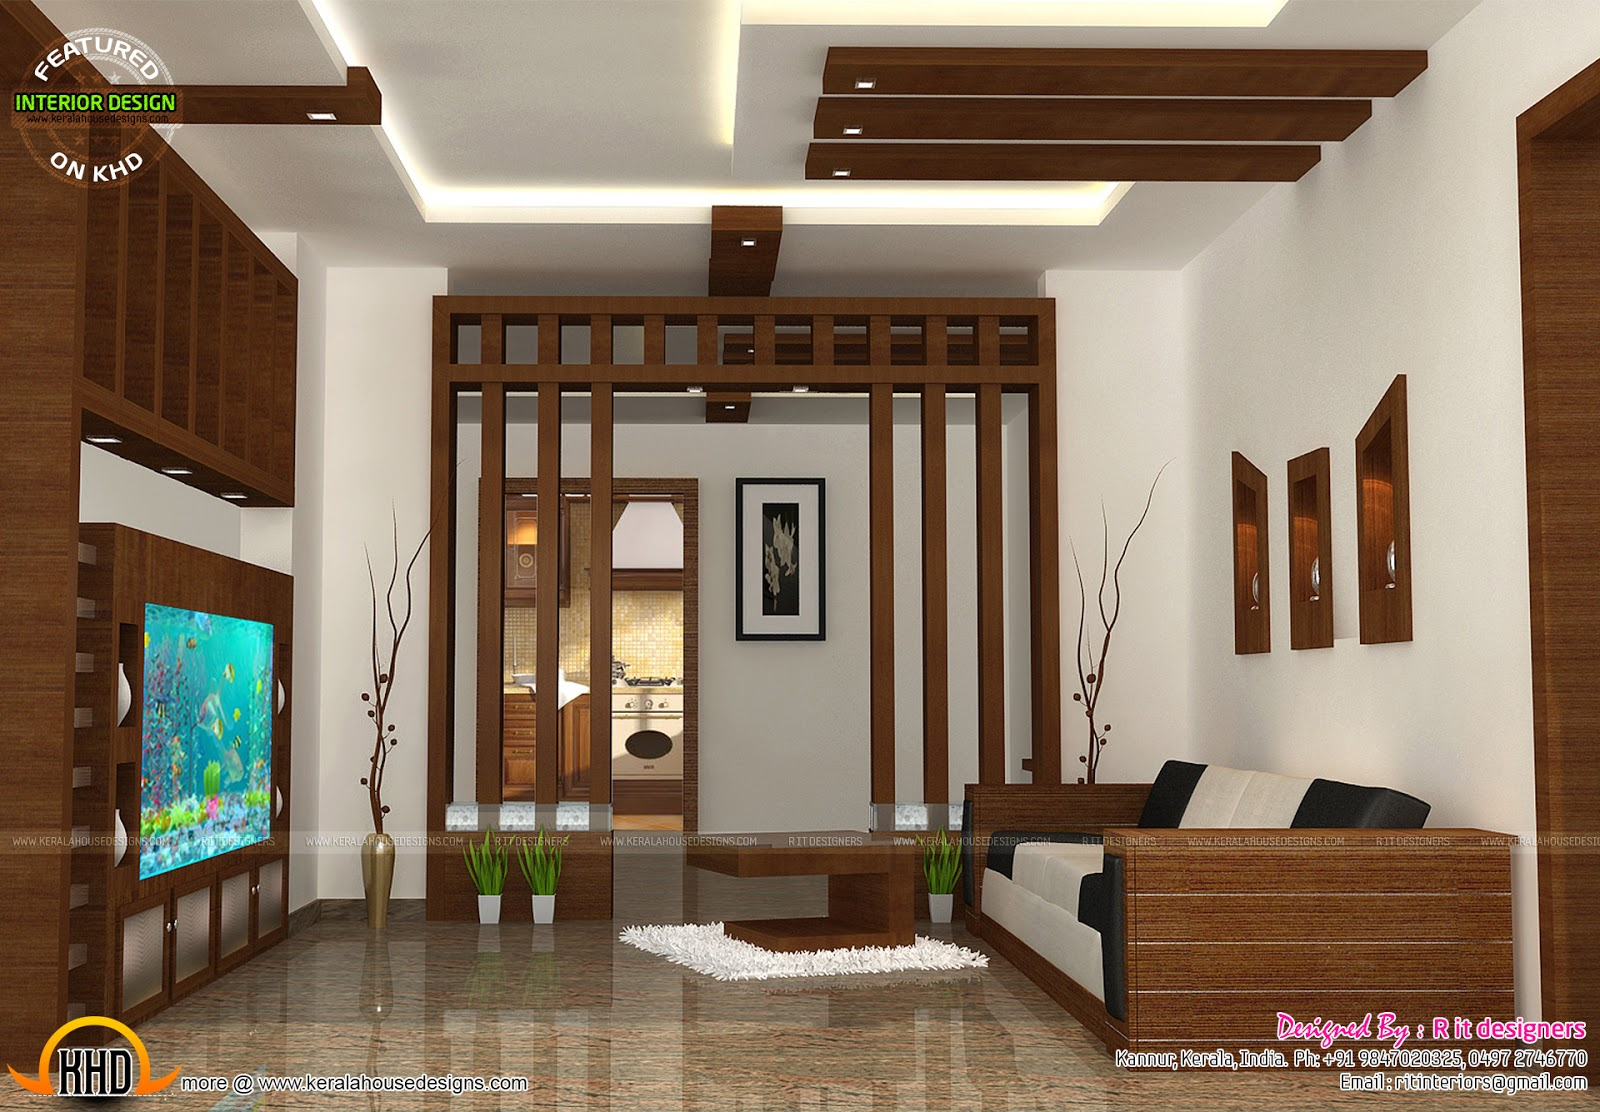 Wooden finish interiors kerala home design and floor plans for Picture of interior designs of house